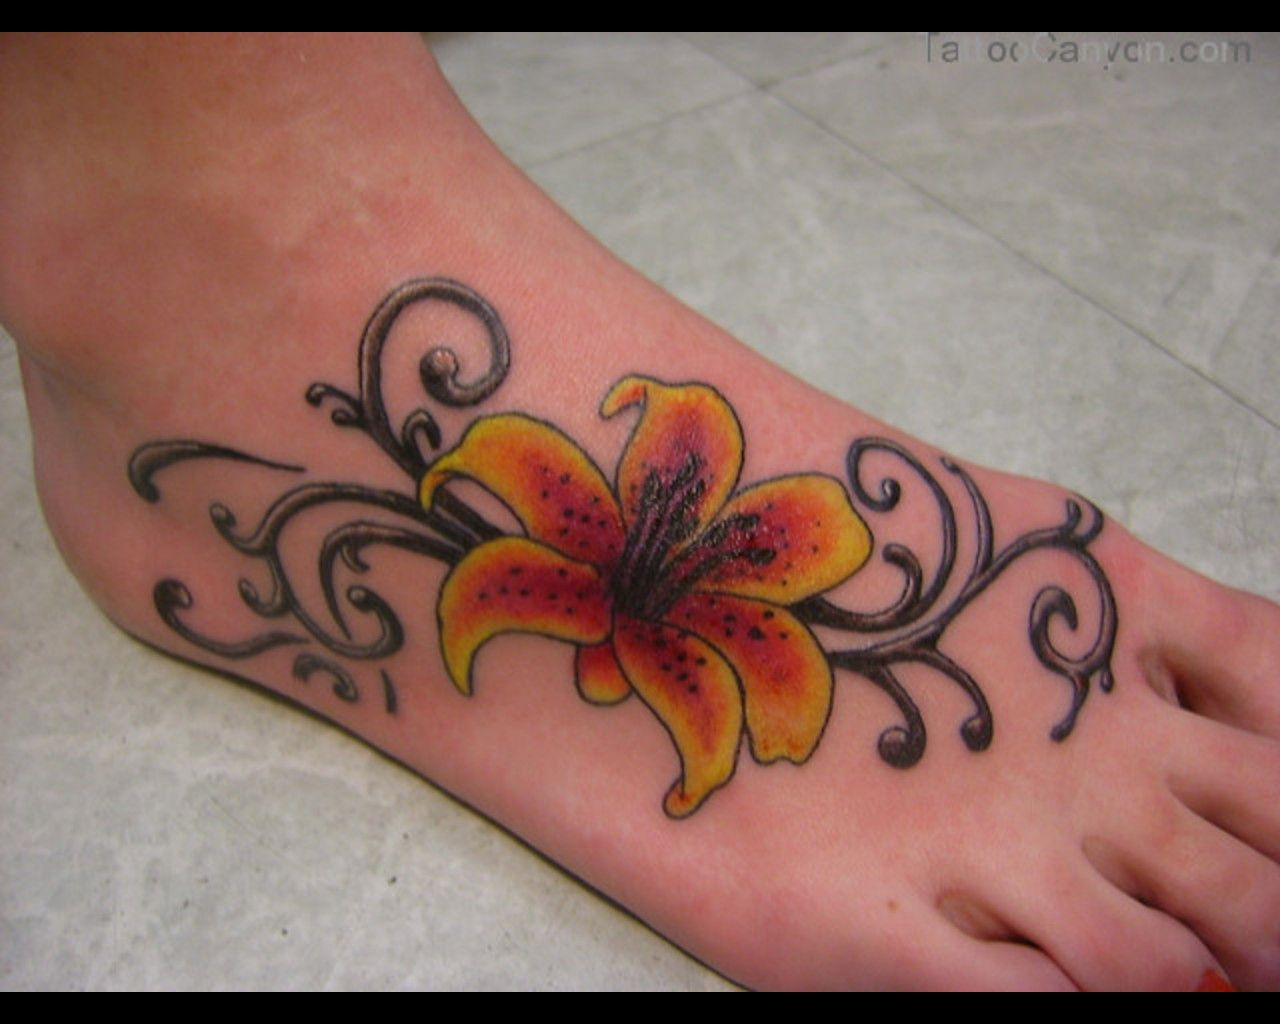 Foot Tattoo Designs For Women 15324 10 Sexy Foot Tattoos For Women